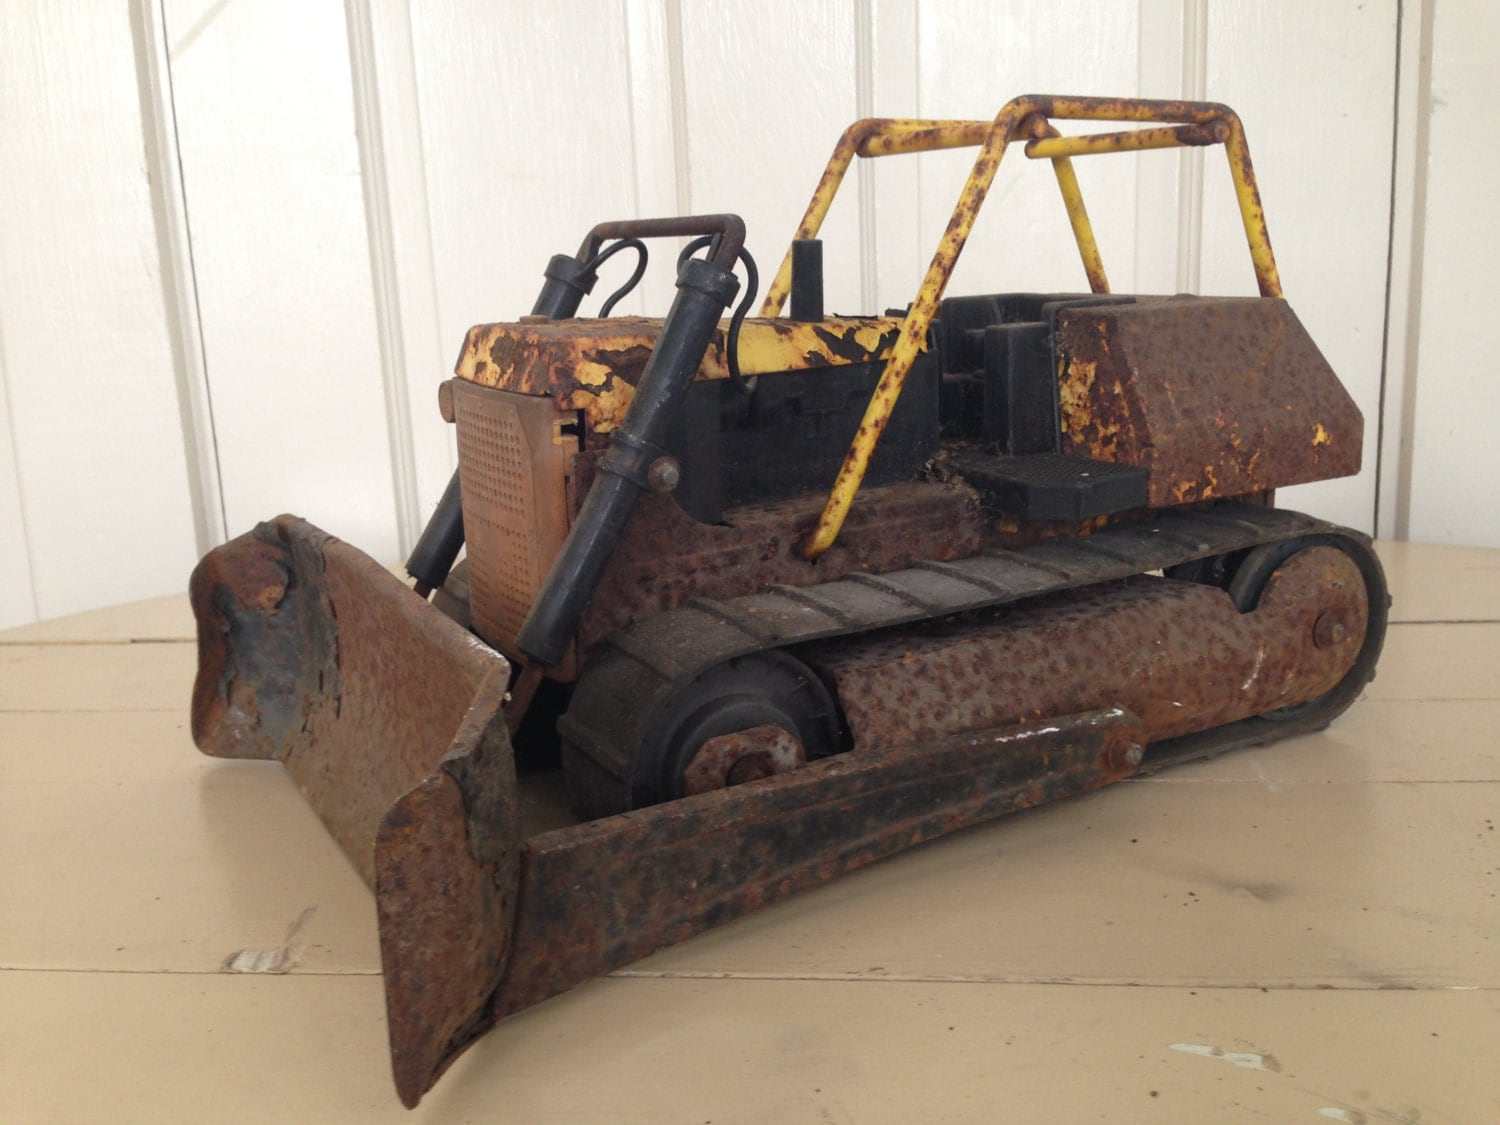 Toy Construction Equipment : Vintage tonka t dozer toy construction equipment